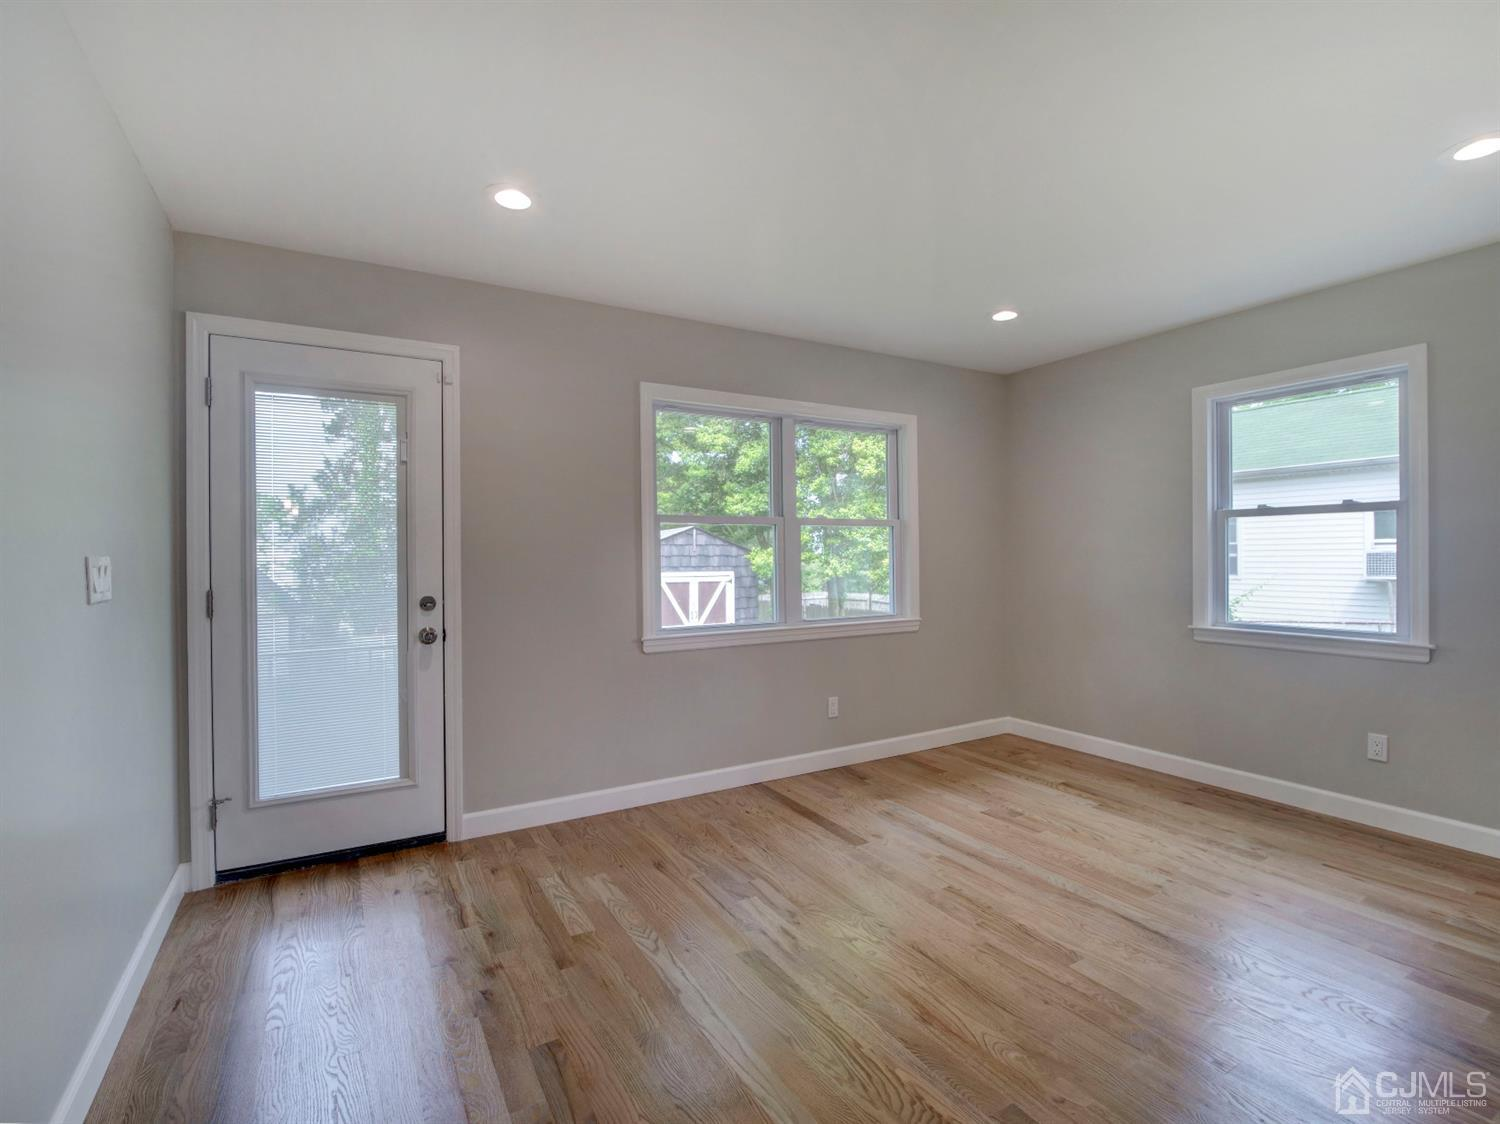 Bonus room off the kitchen with access to back large. Can be used a separate kitchen dining area or play/game room.